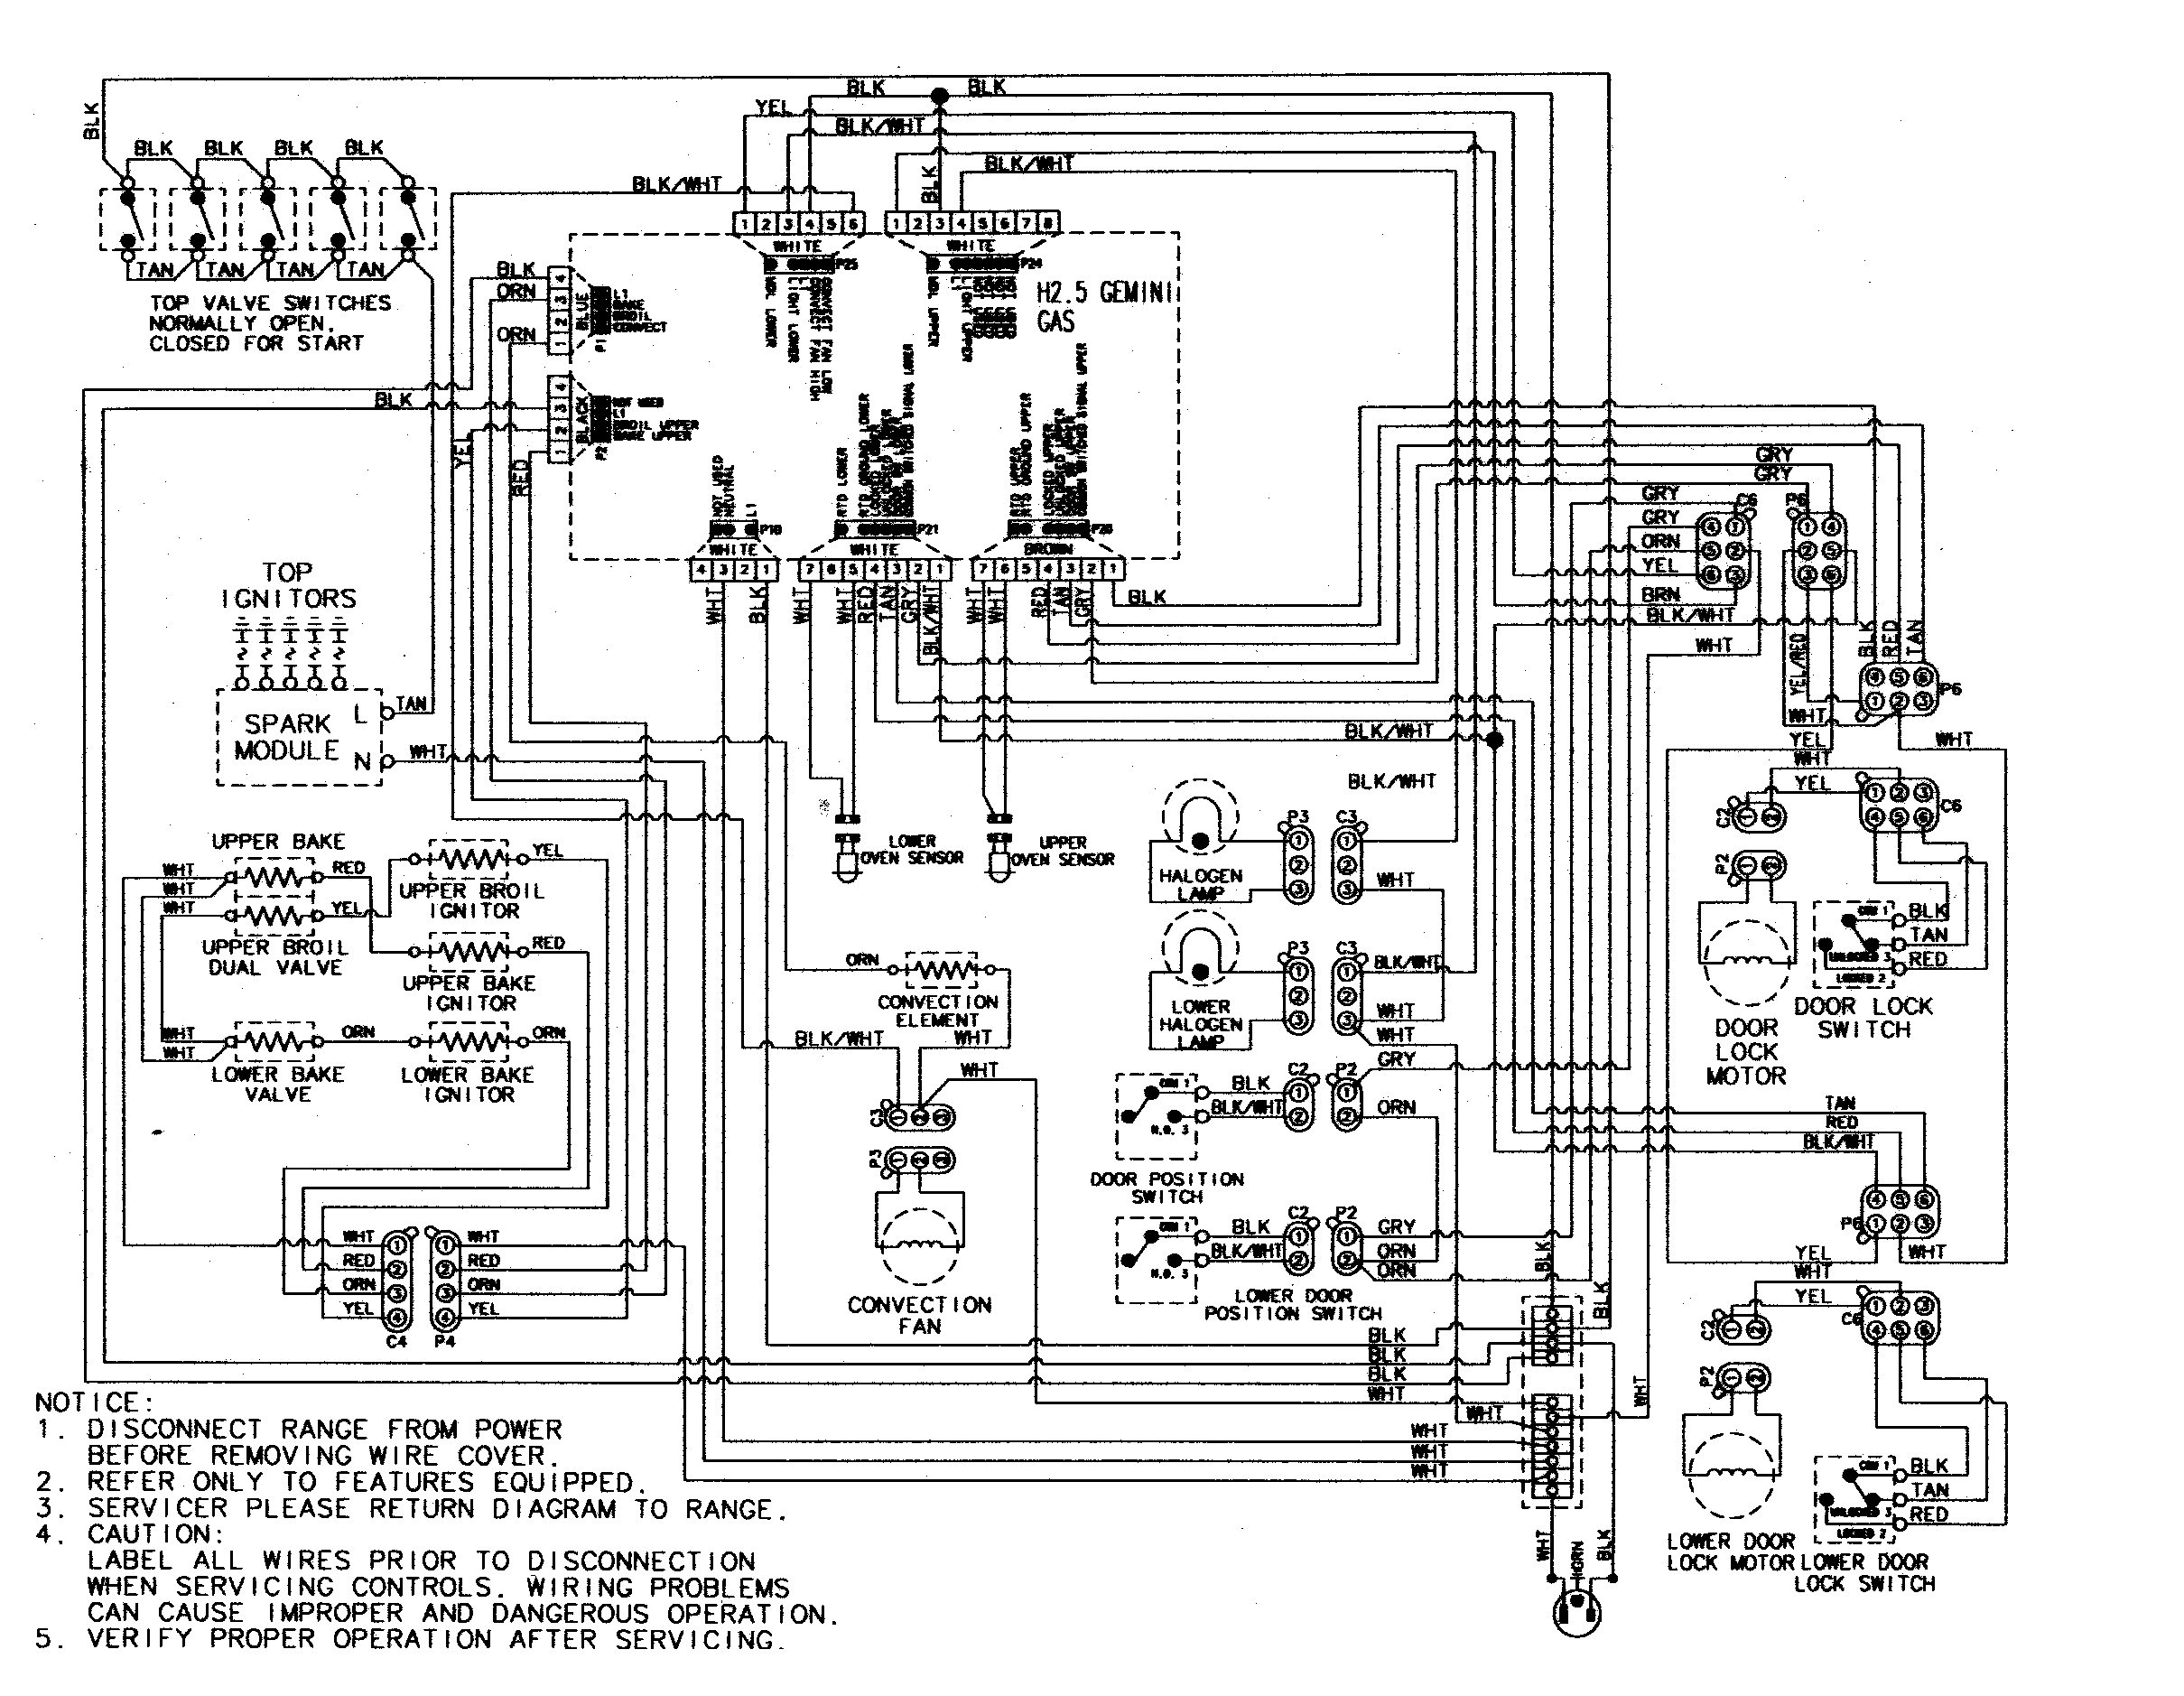 wiring information wiring image wiring diagram oven wiring diagram wire diagram on wiring information